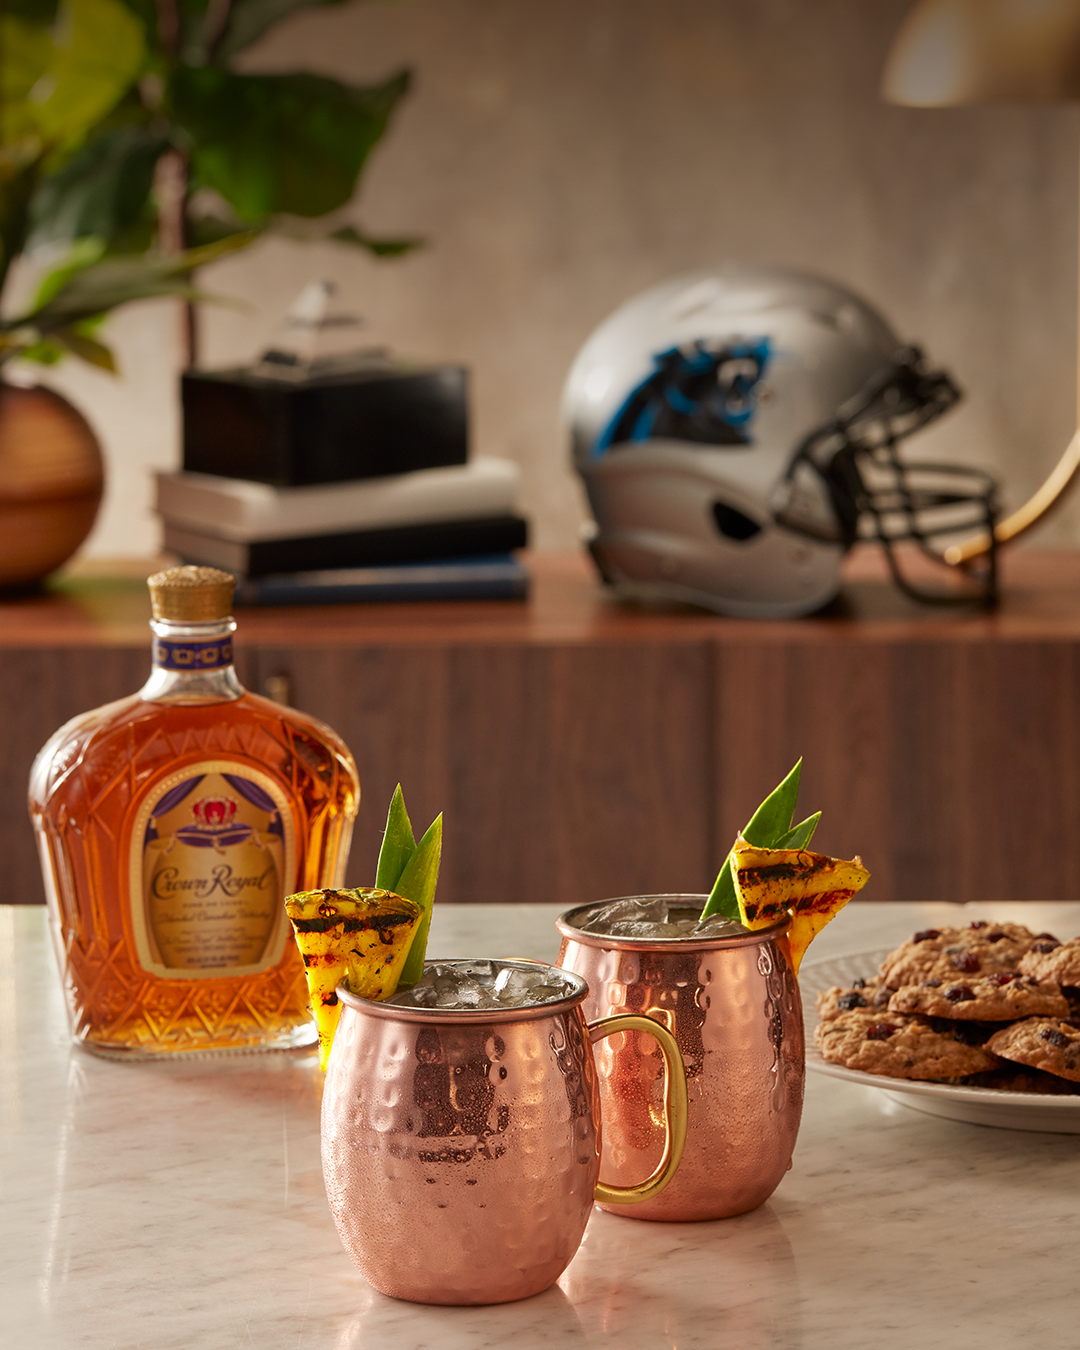 Carolina Panthers (Pineapple Old Fashioned) with a bottle of Crown Royal Deluxe